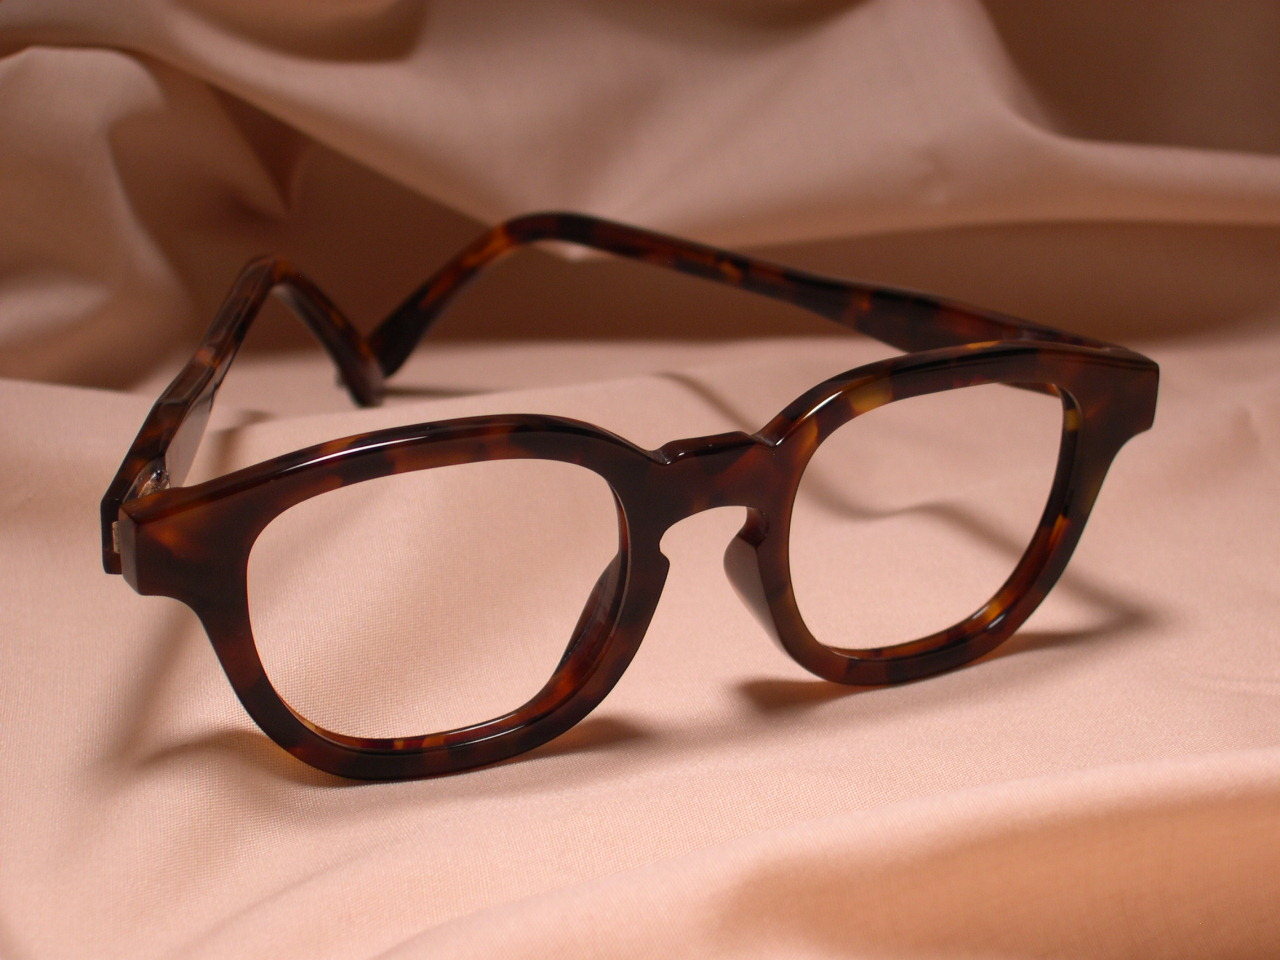 Indivijual-Custom-Glasses-22.jpg